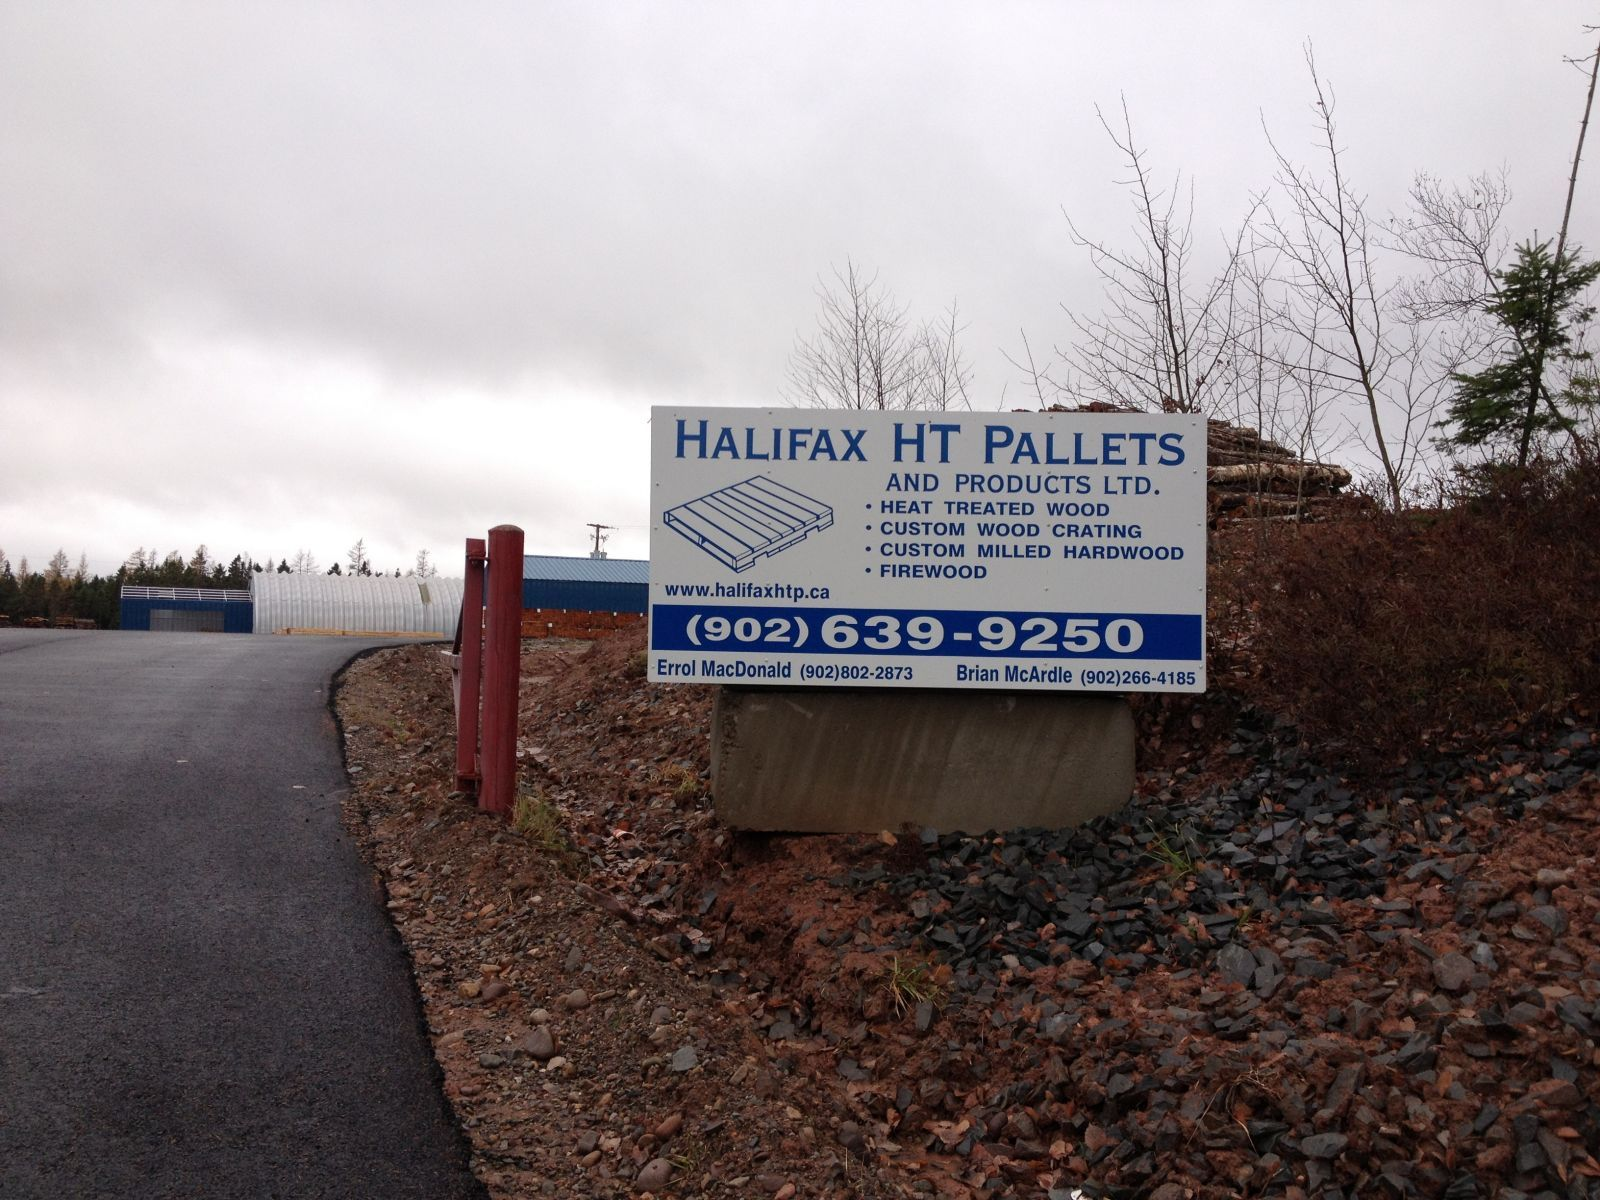 Crib for sale halifax - Canadian Wood Pallet Container Association Halifax Ht Pallets